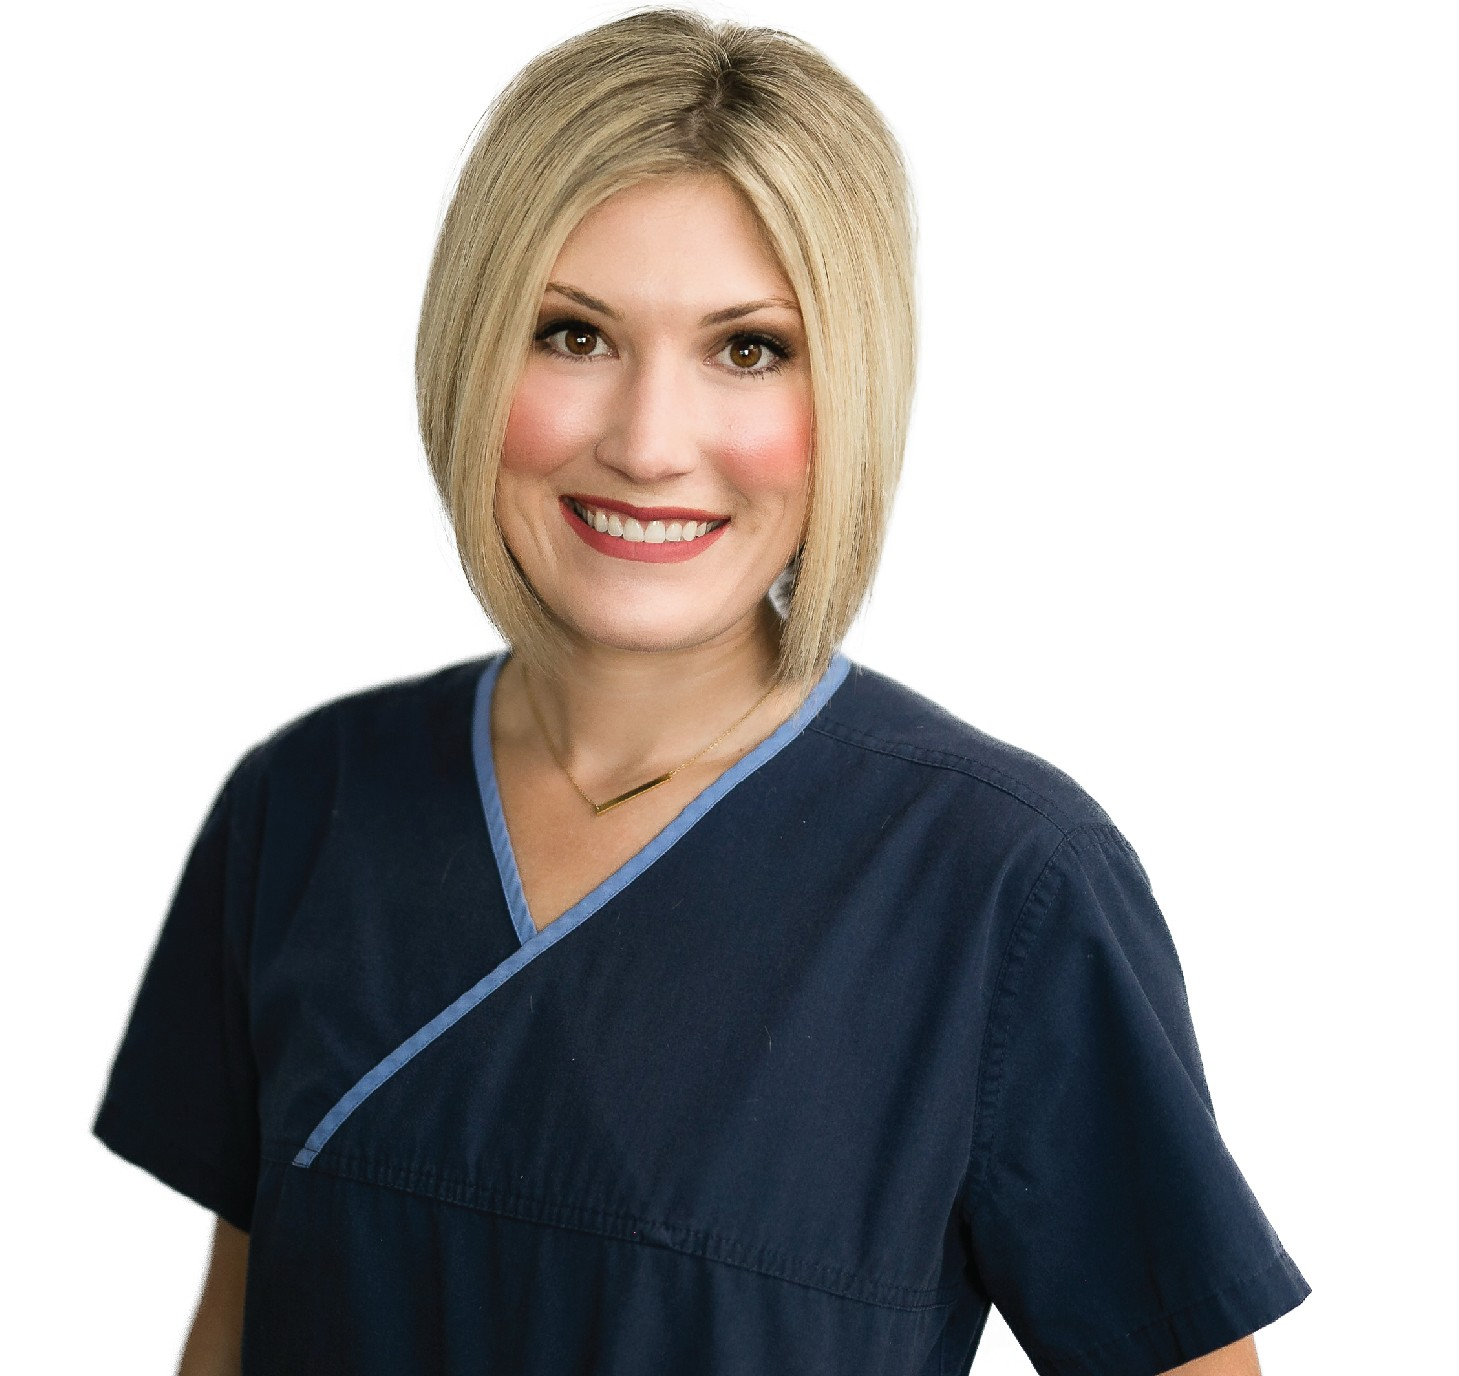 Scottye is a surgical assistant at Oral Surgery Specialists of Oklahoma